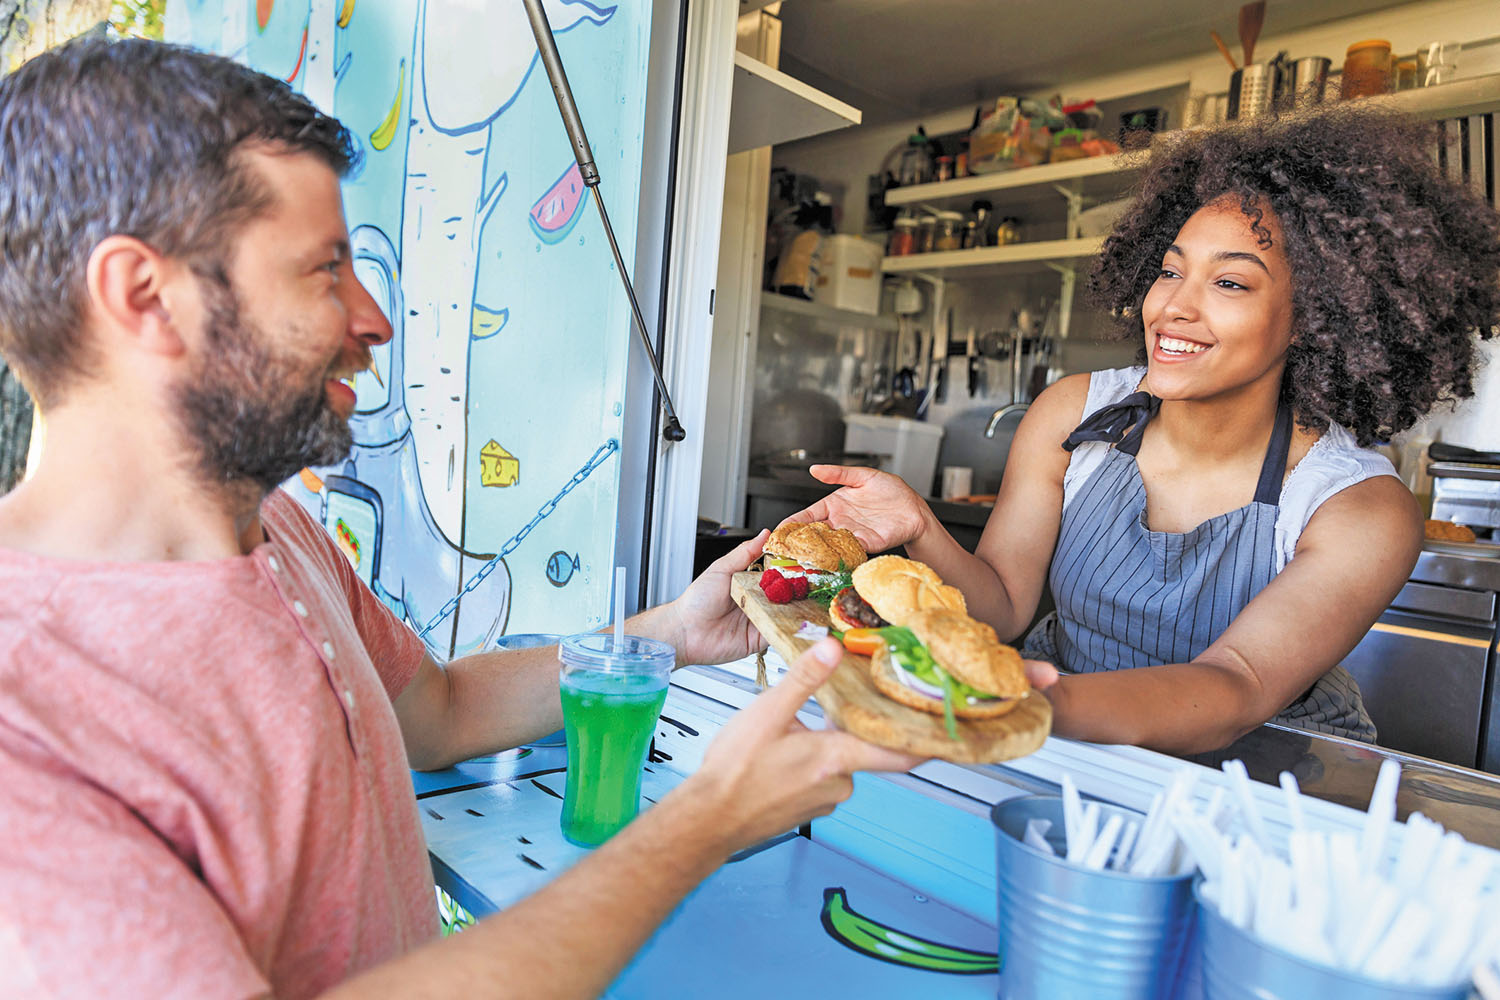 Food truck fare: Trendy eats, but are they safe? YES!